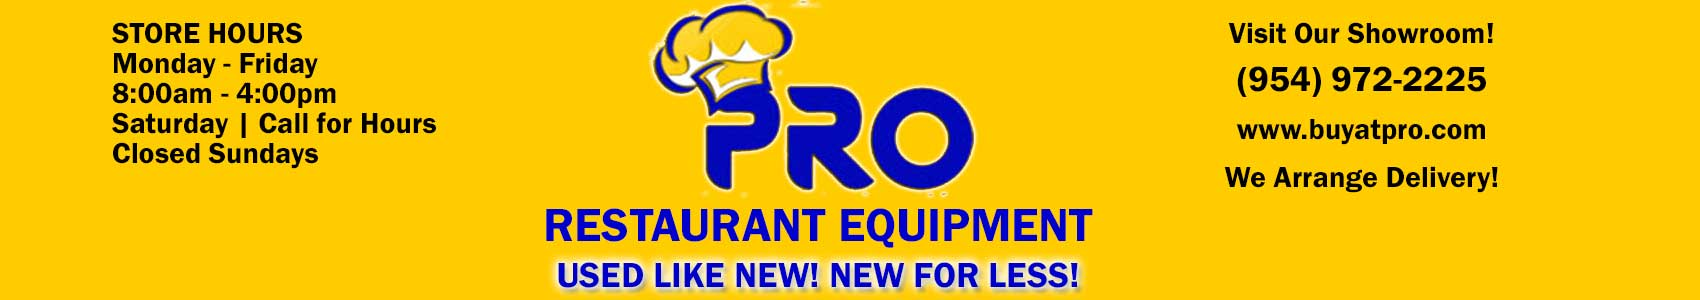 2020-header--restaurant-equipment-pompano-beach-florida-used-restaurant-equipment